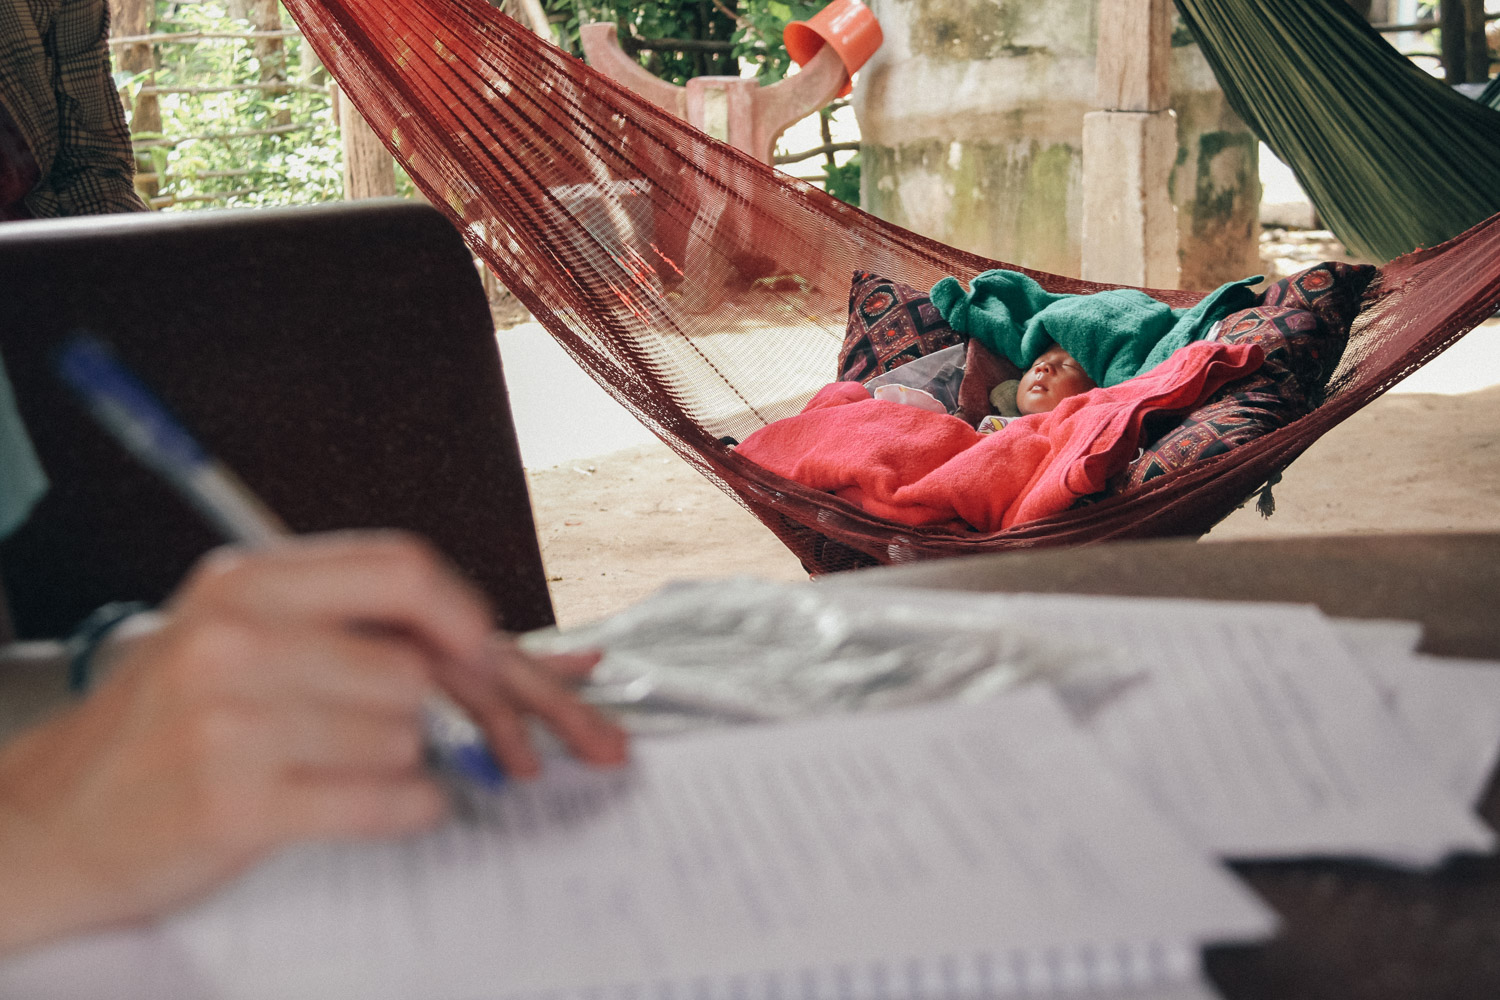 A baby sleeps in a hammock at a village home in Siem Reap Province, Cambodia